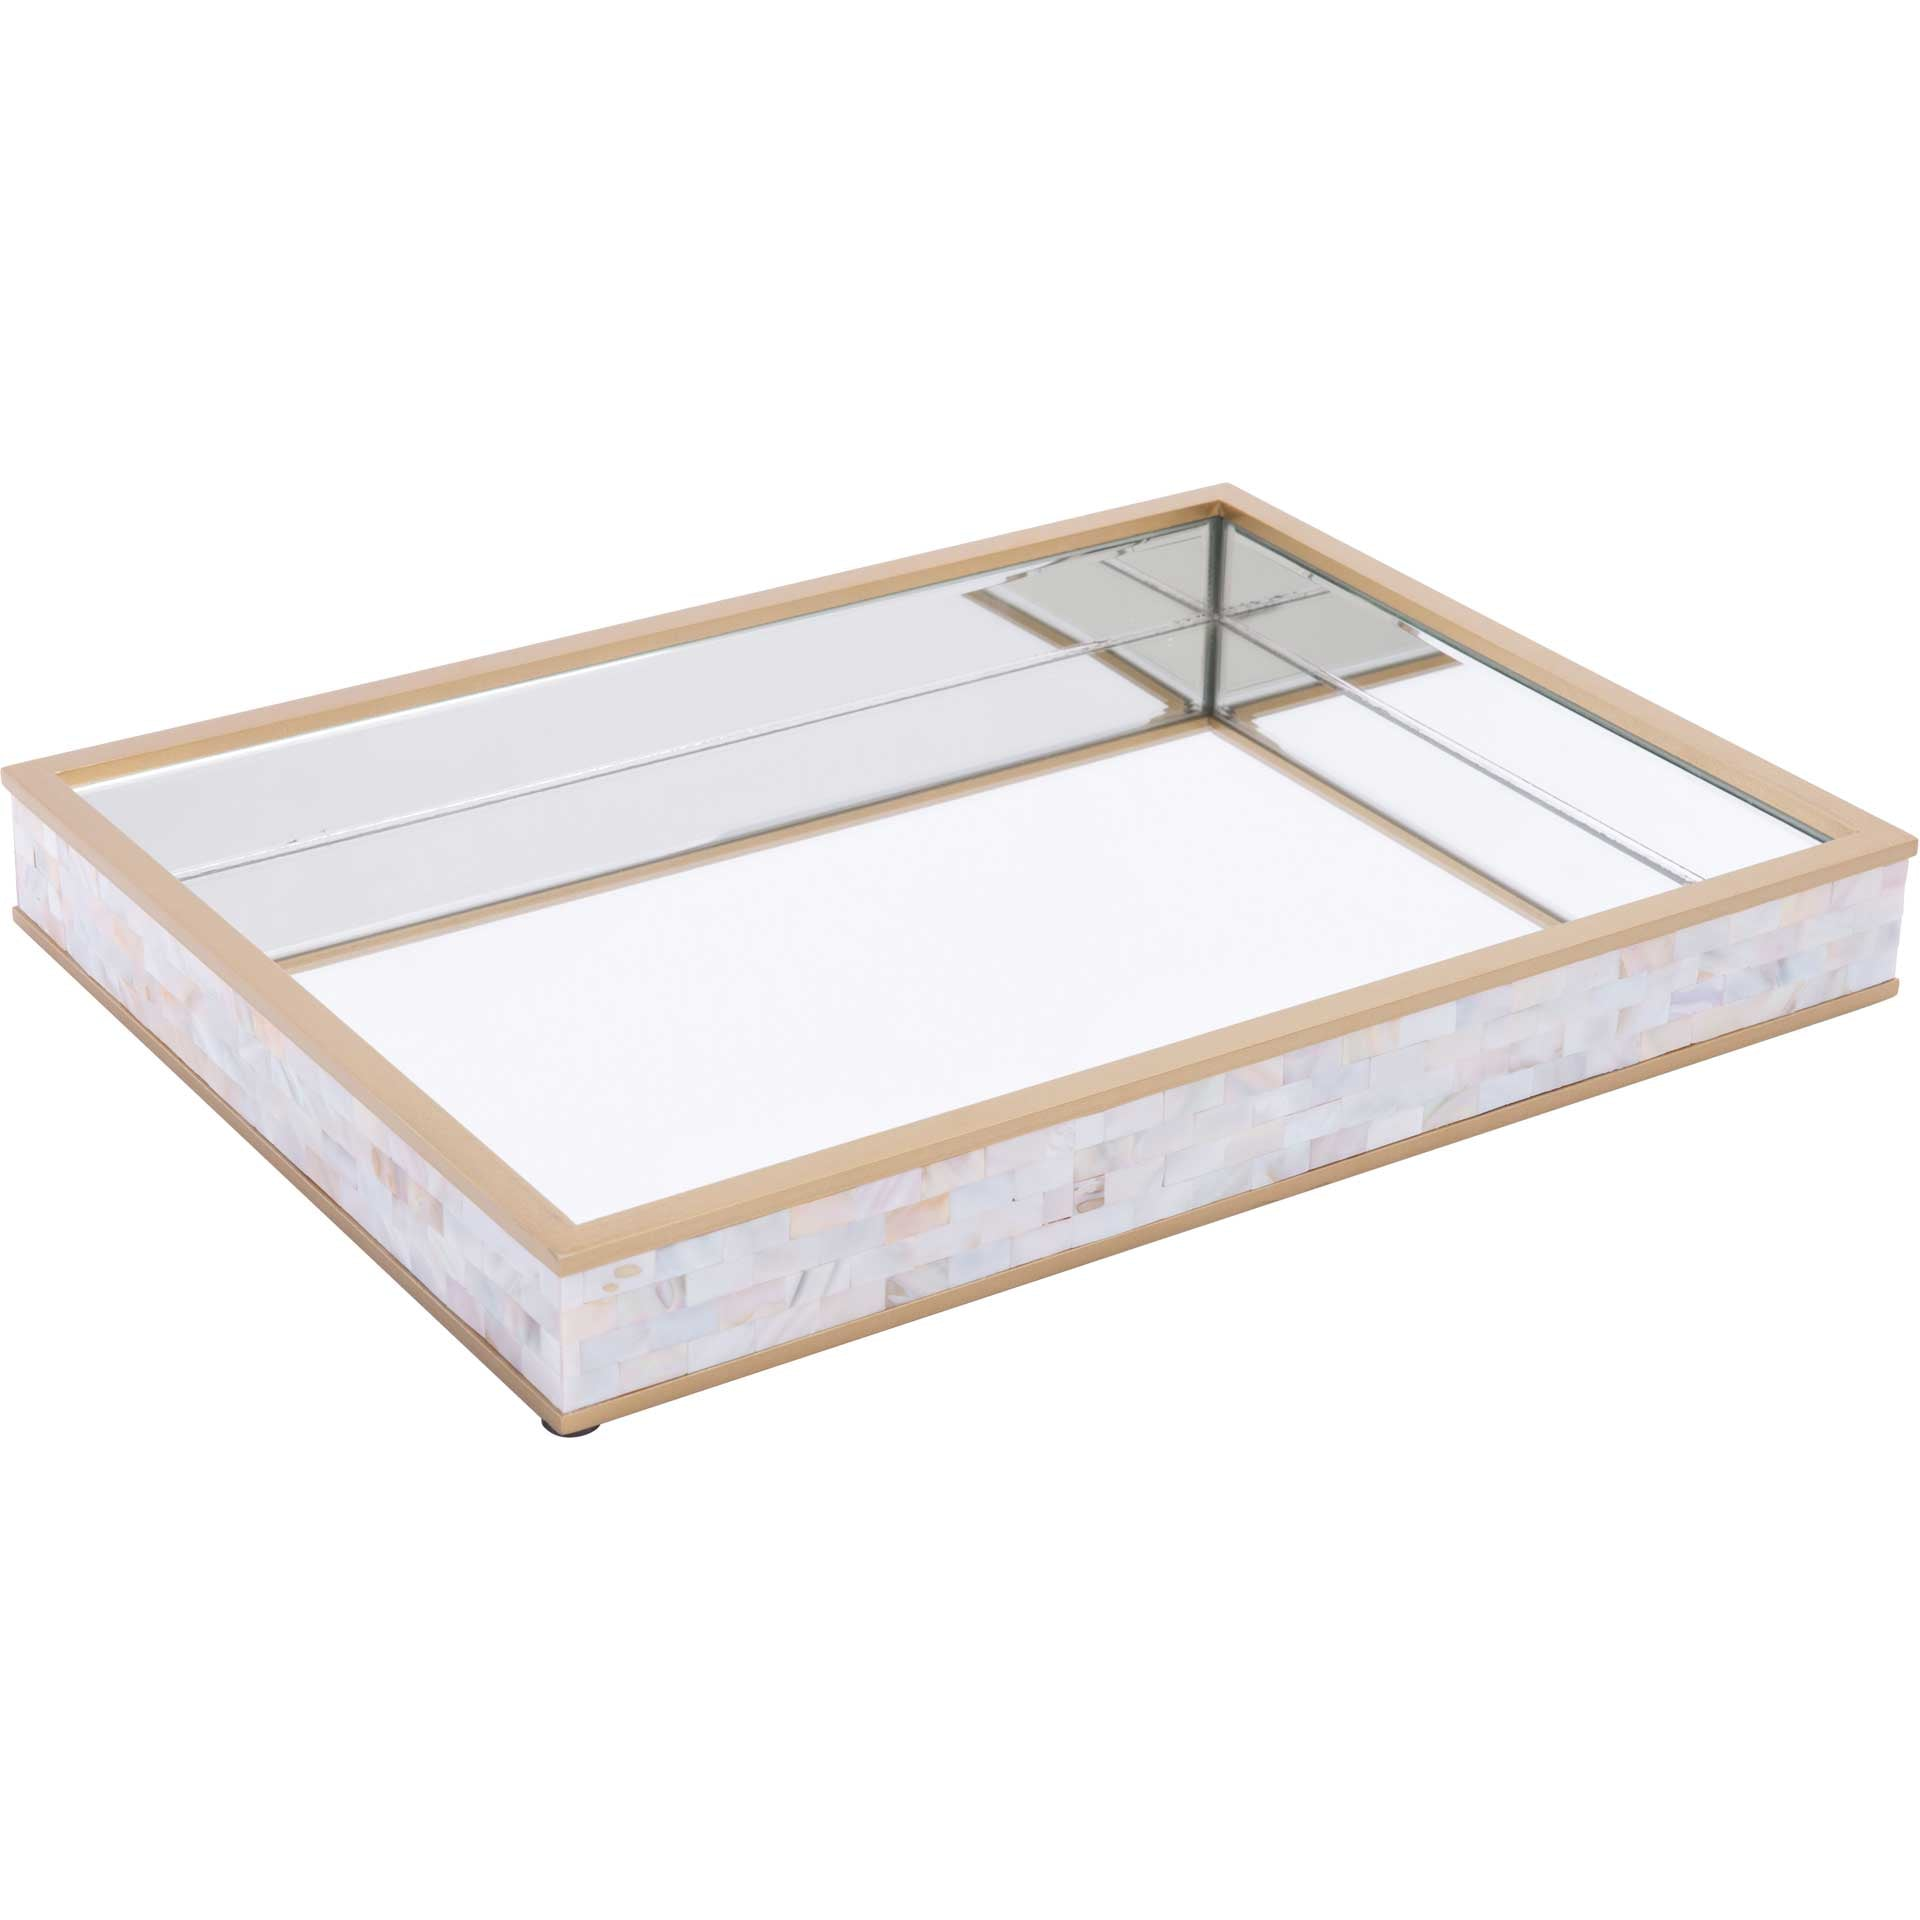 Mother of Pearl Mirror Tray